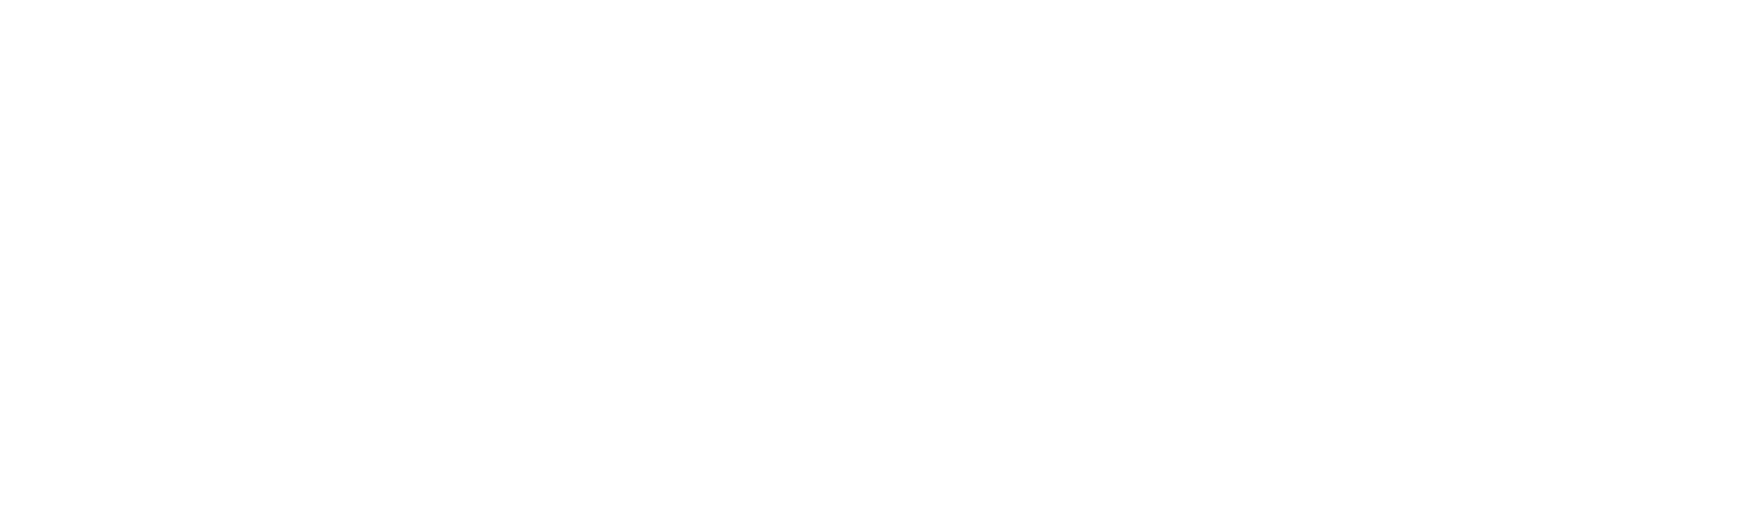 Demos public and european law